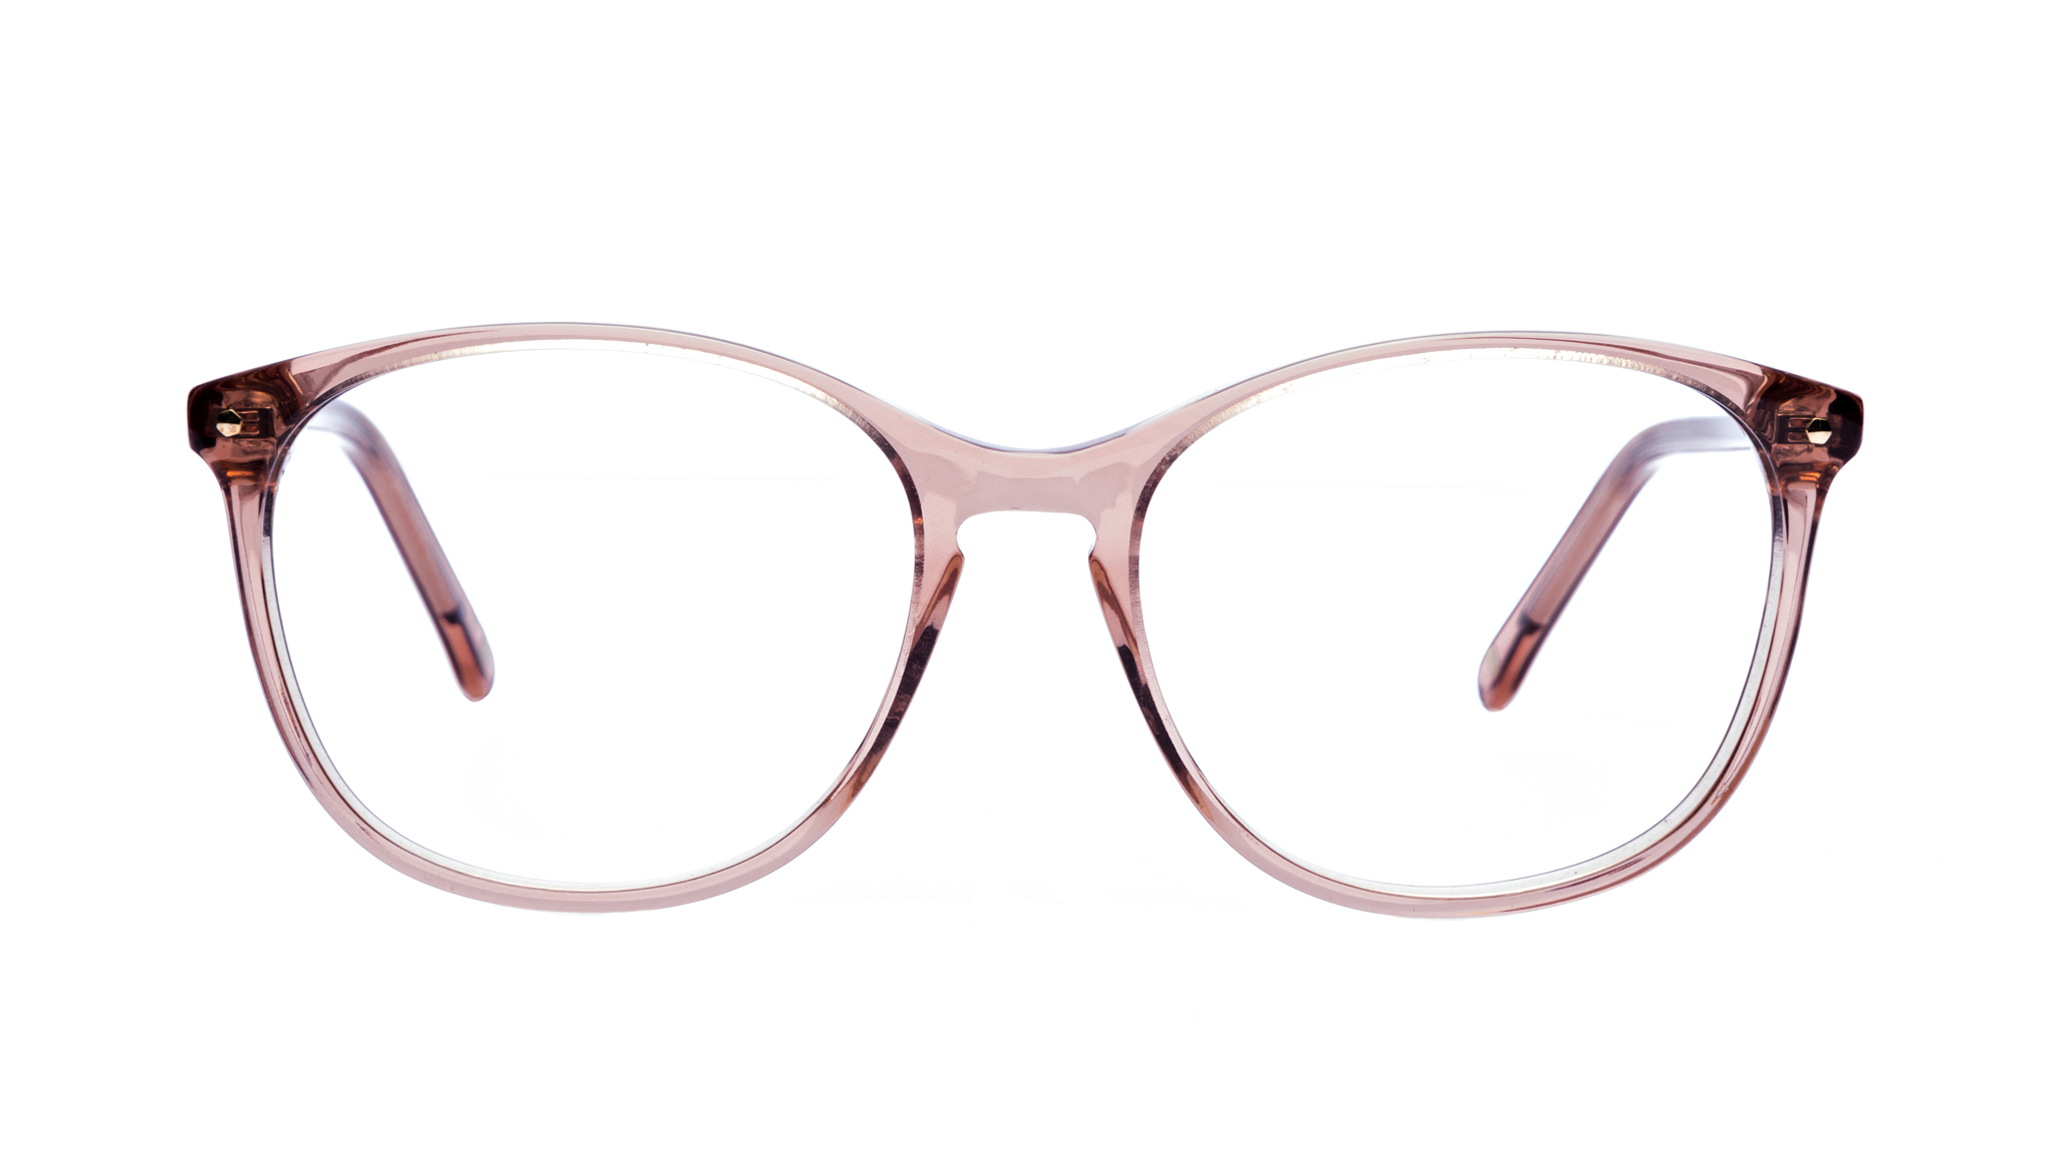 84dba3ceccd Fashion eyeglasses women rectangle clear beige pink nadine front jpg  1200x500 Bonlook womens eyeglasses women petite